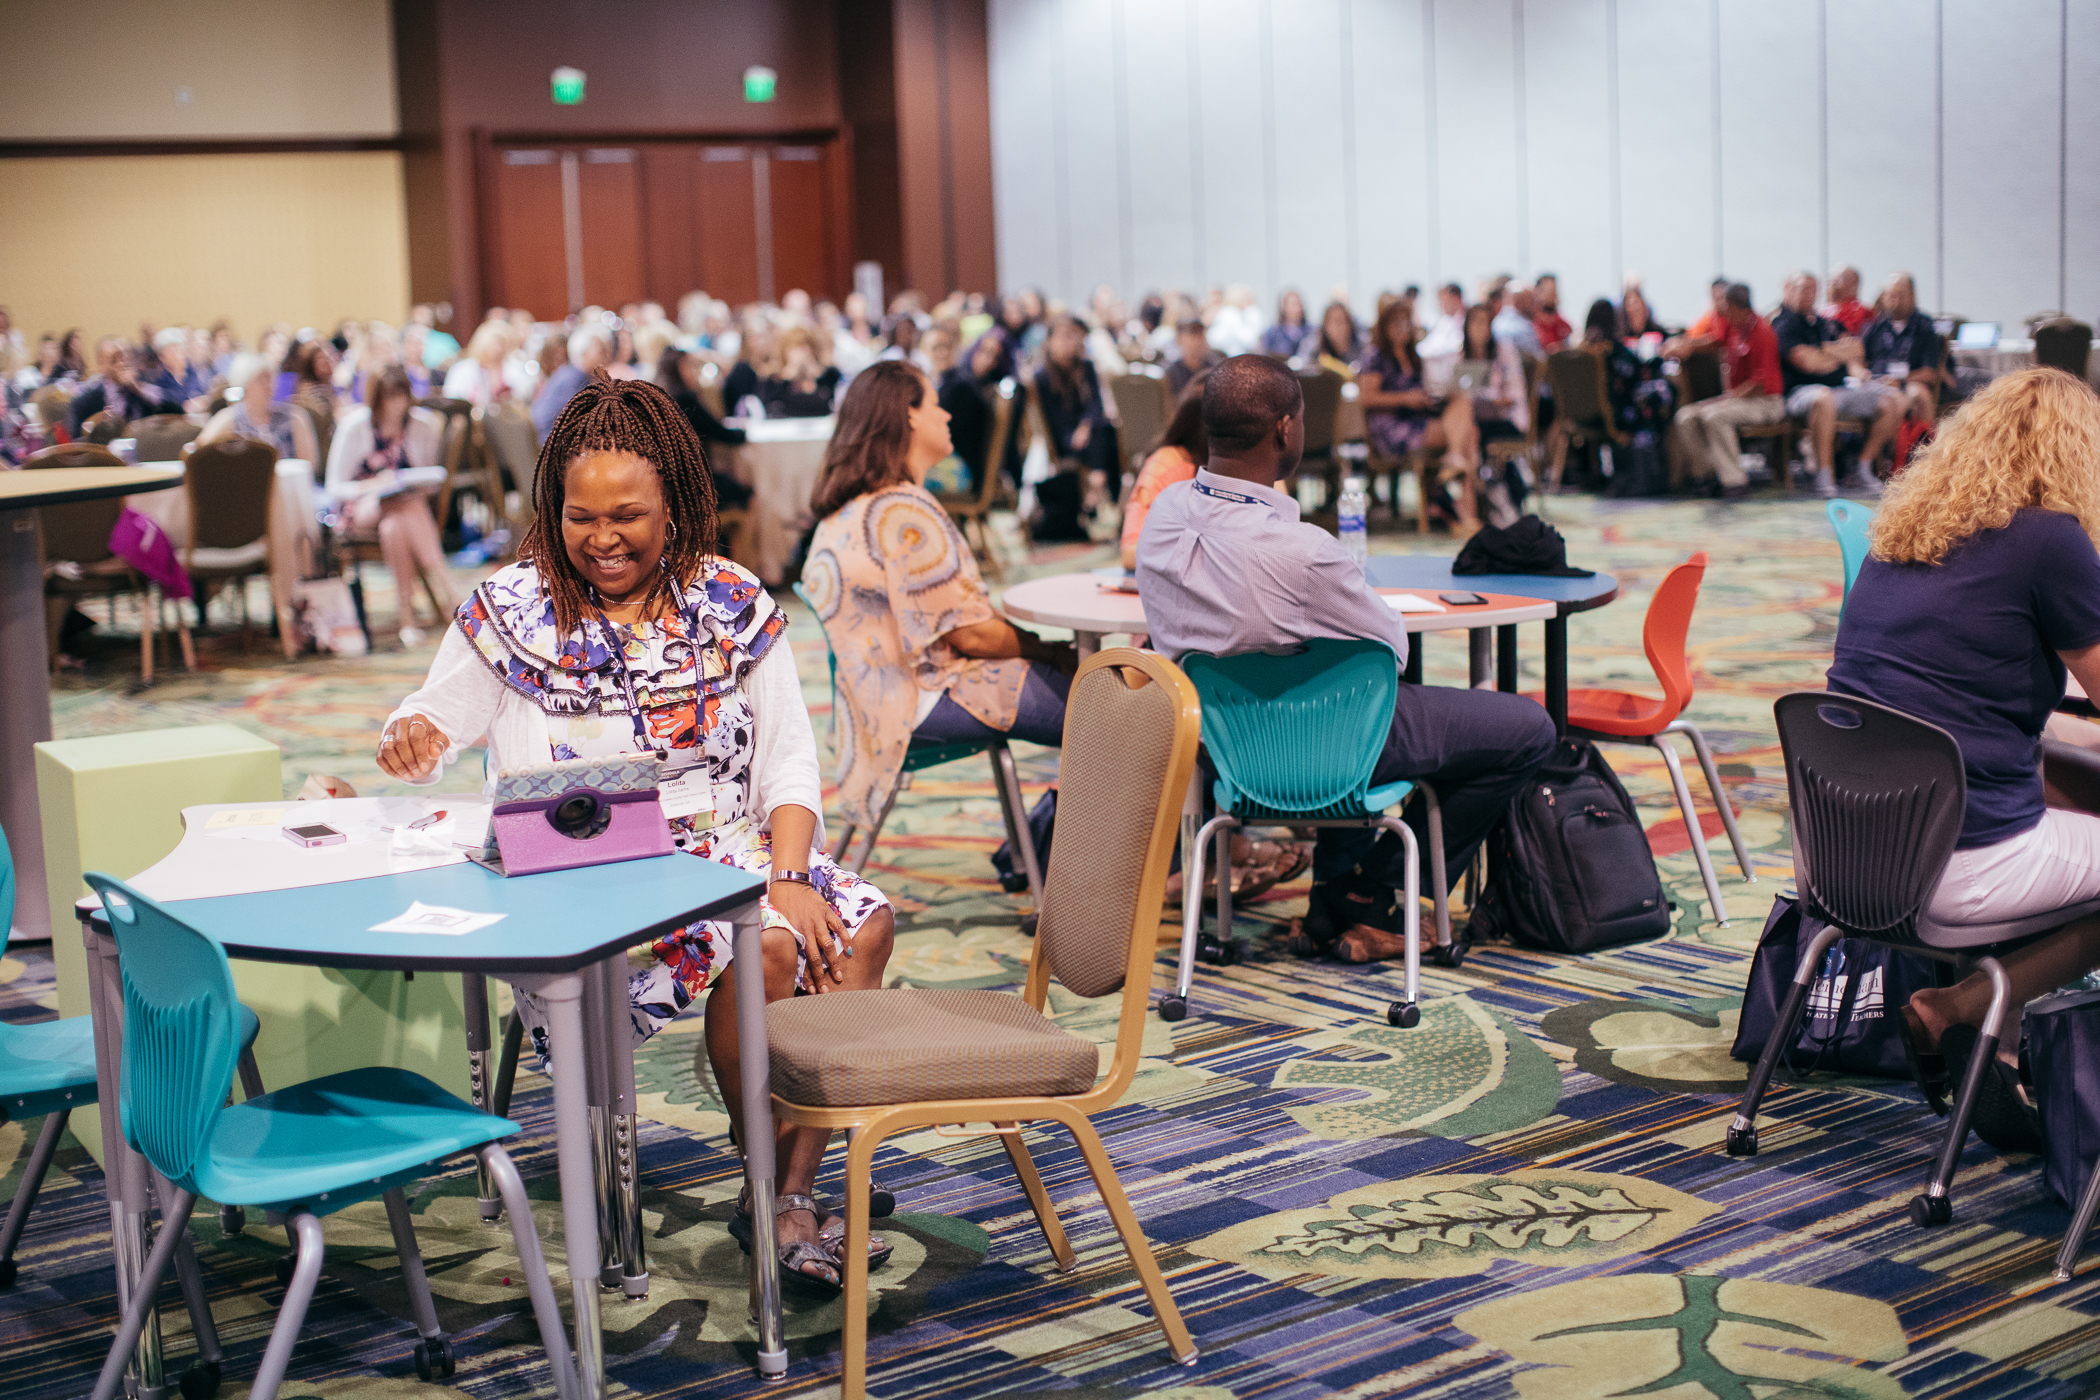 live event commercial photography brand storytelling for education florida conference photographer ©2018abigailbobophotography-128.jpg